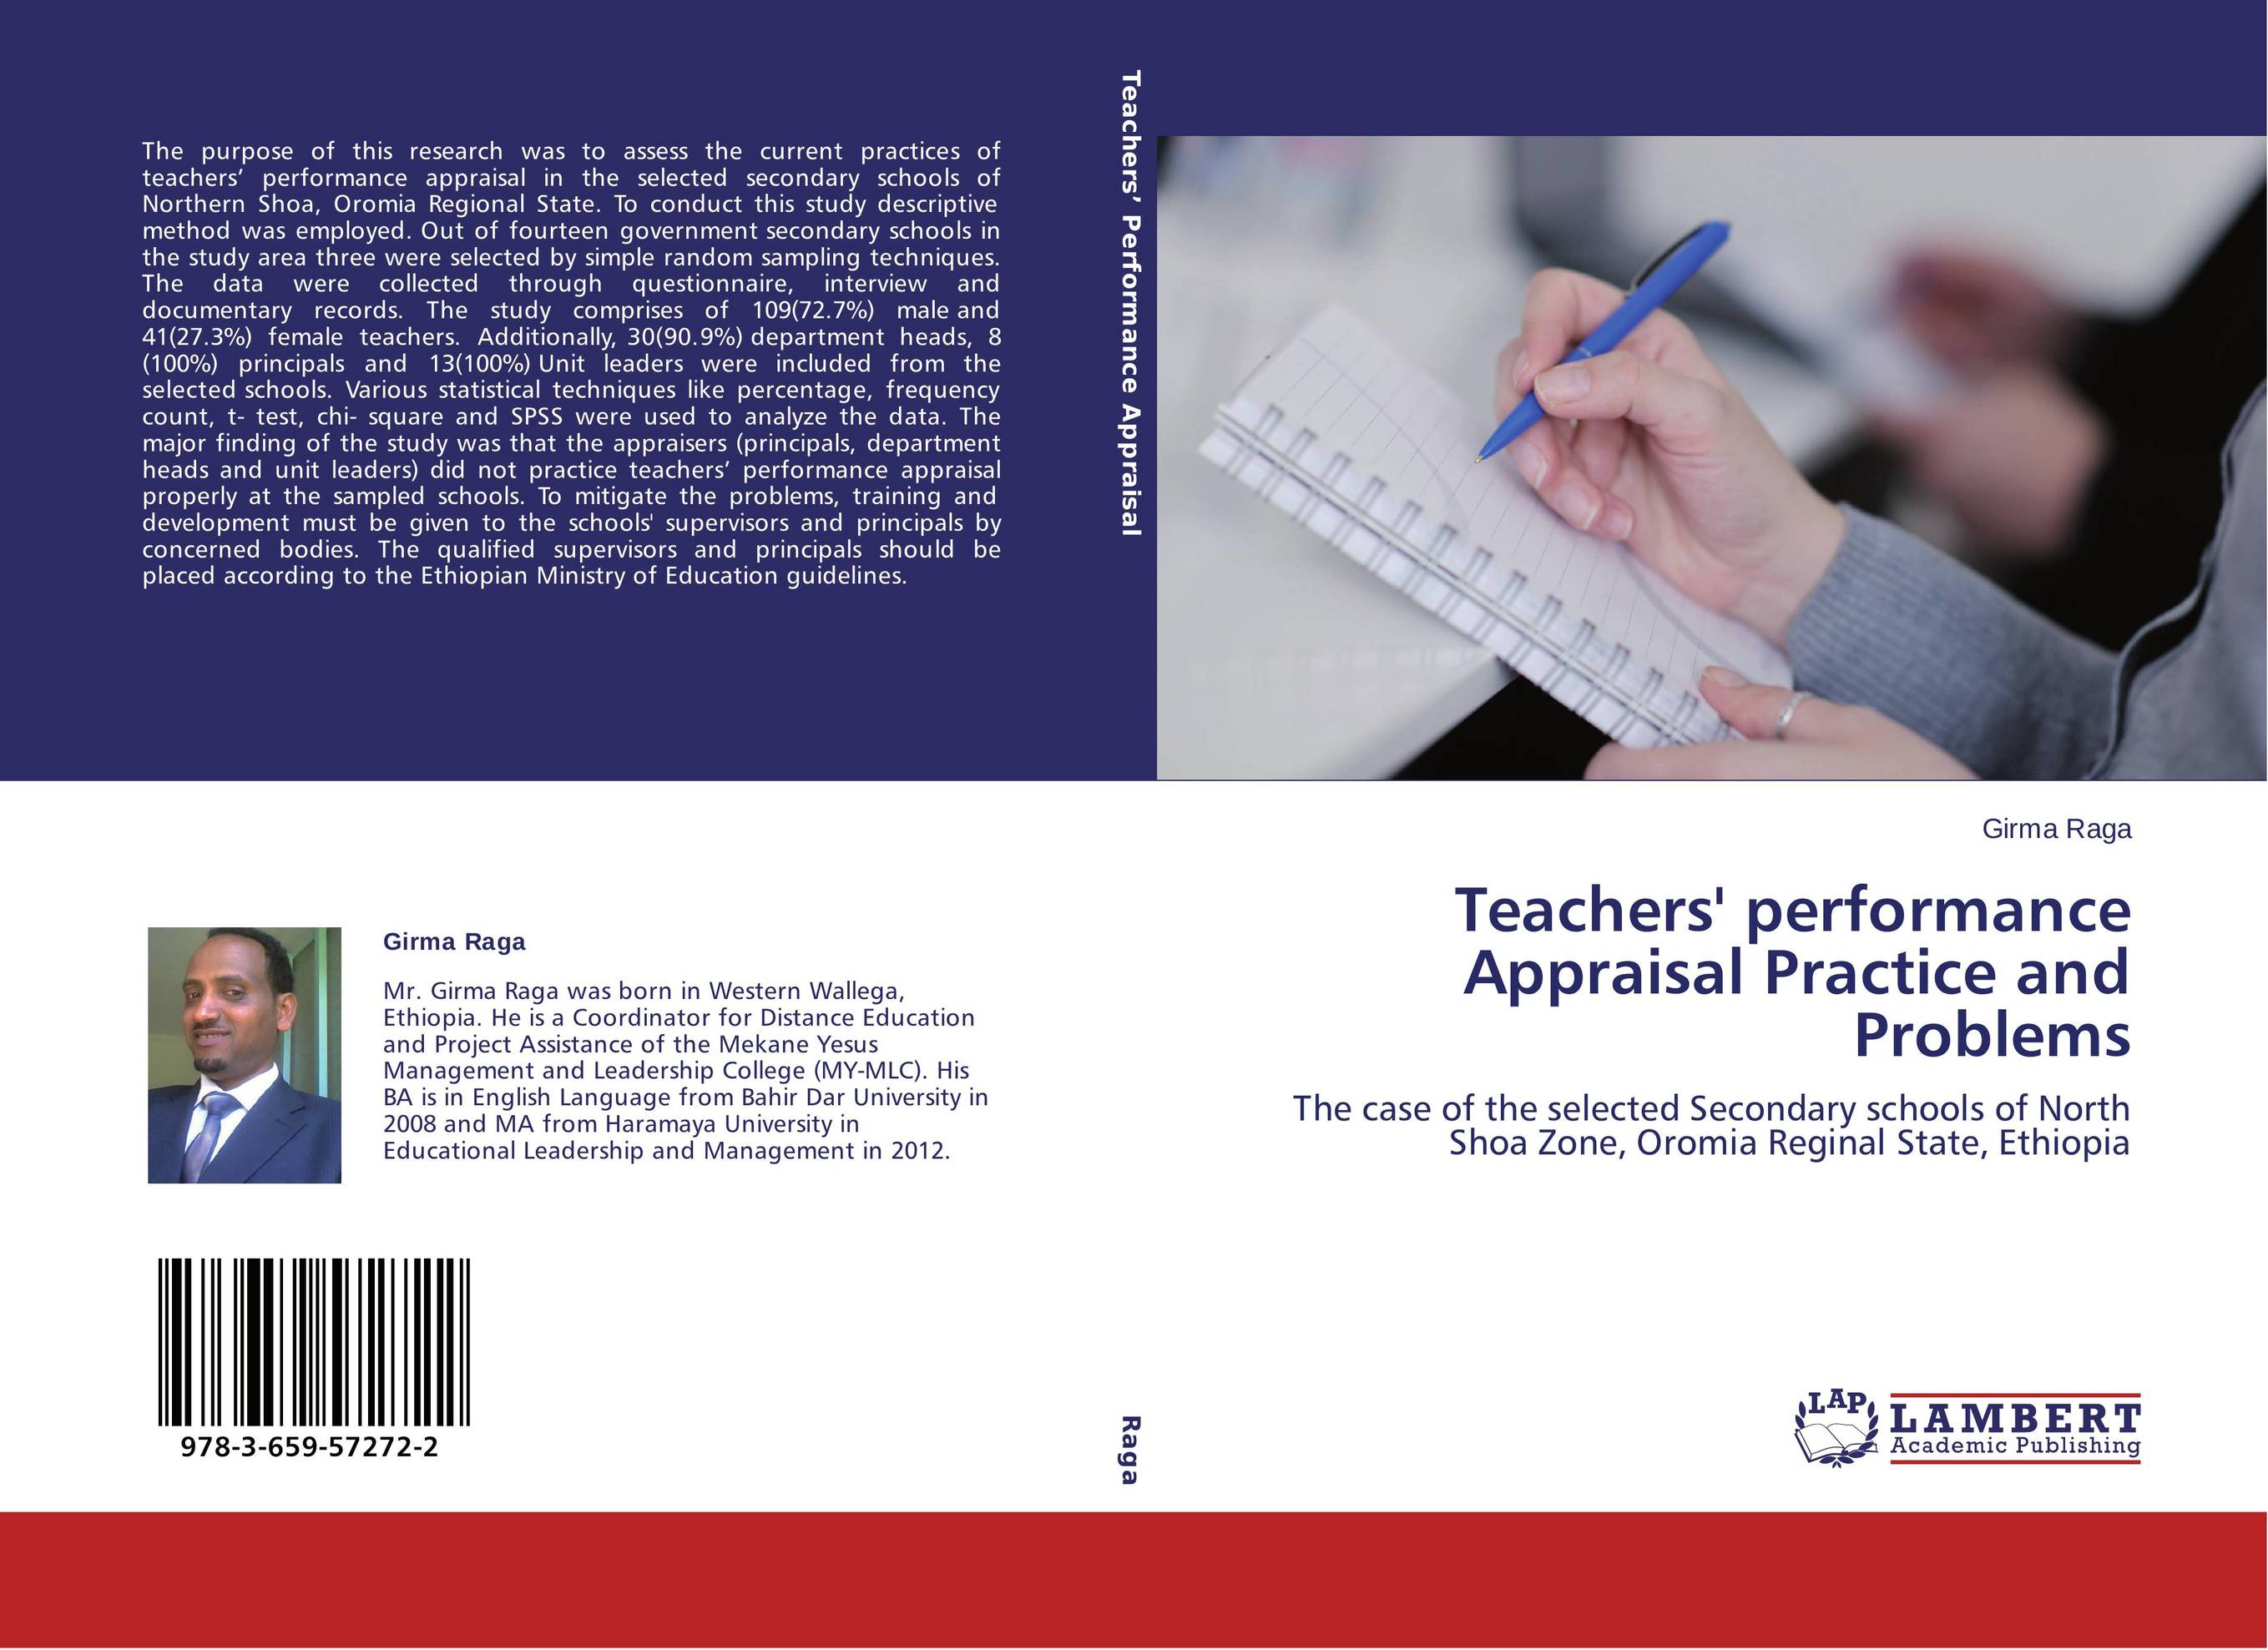 national values performance appraisal practices and Impact of hrm practices on employee's performance saira hassan  performance appraisal, career planning system, employee participation, and compensation system) have  compensation is a process of providing monetary value to employees for the work they performed.